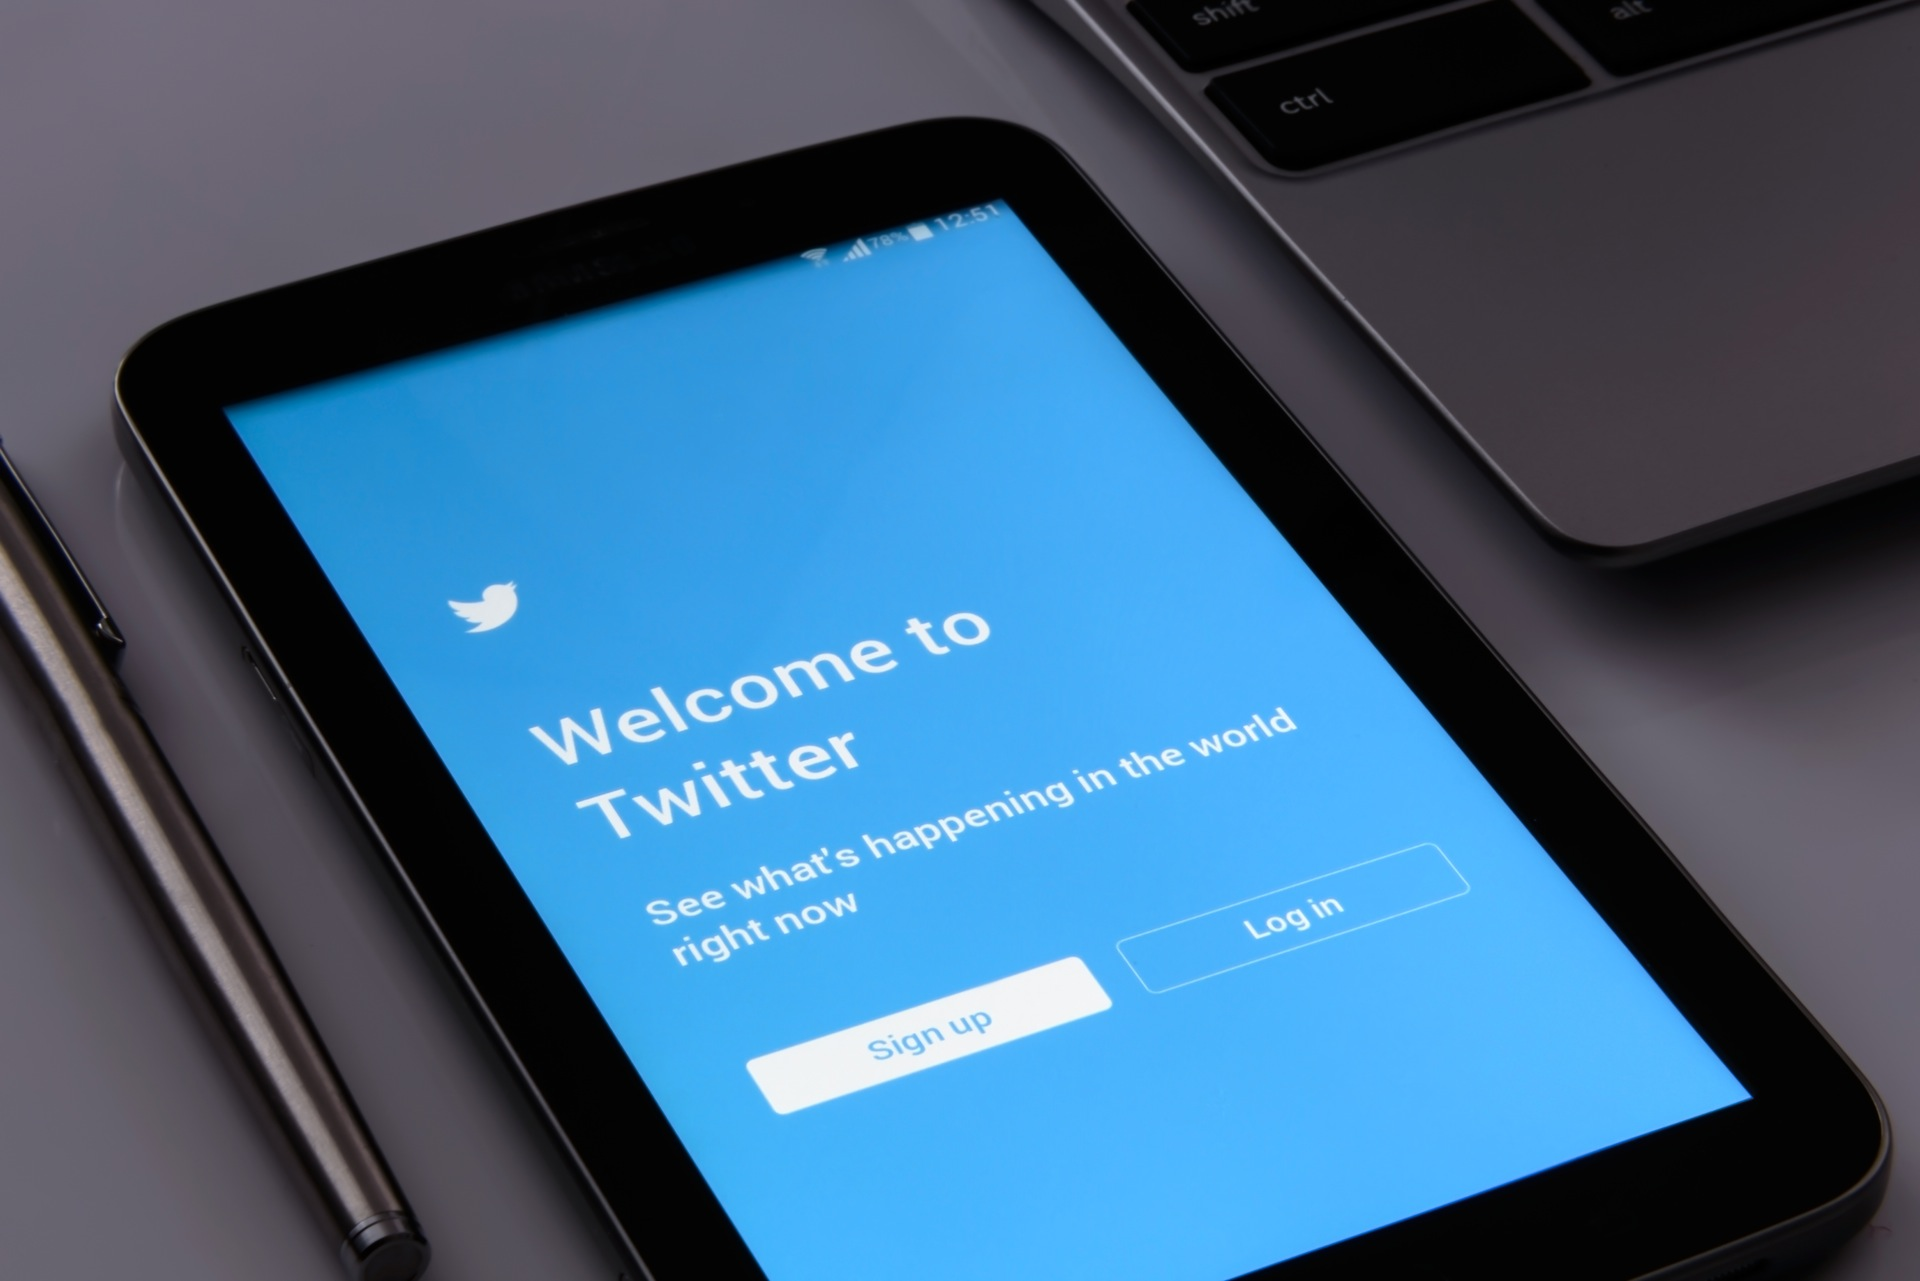 Top 8 Twitter Search Tricks That Will Get Your Business More Followers